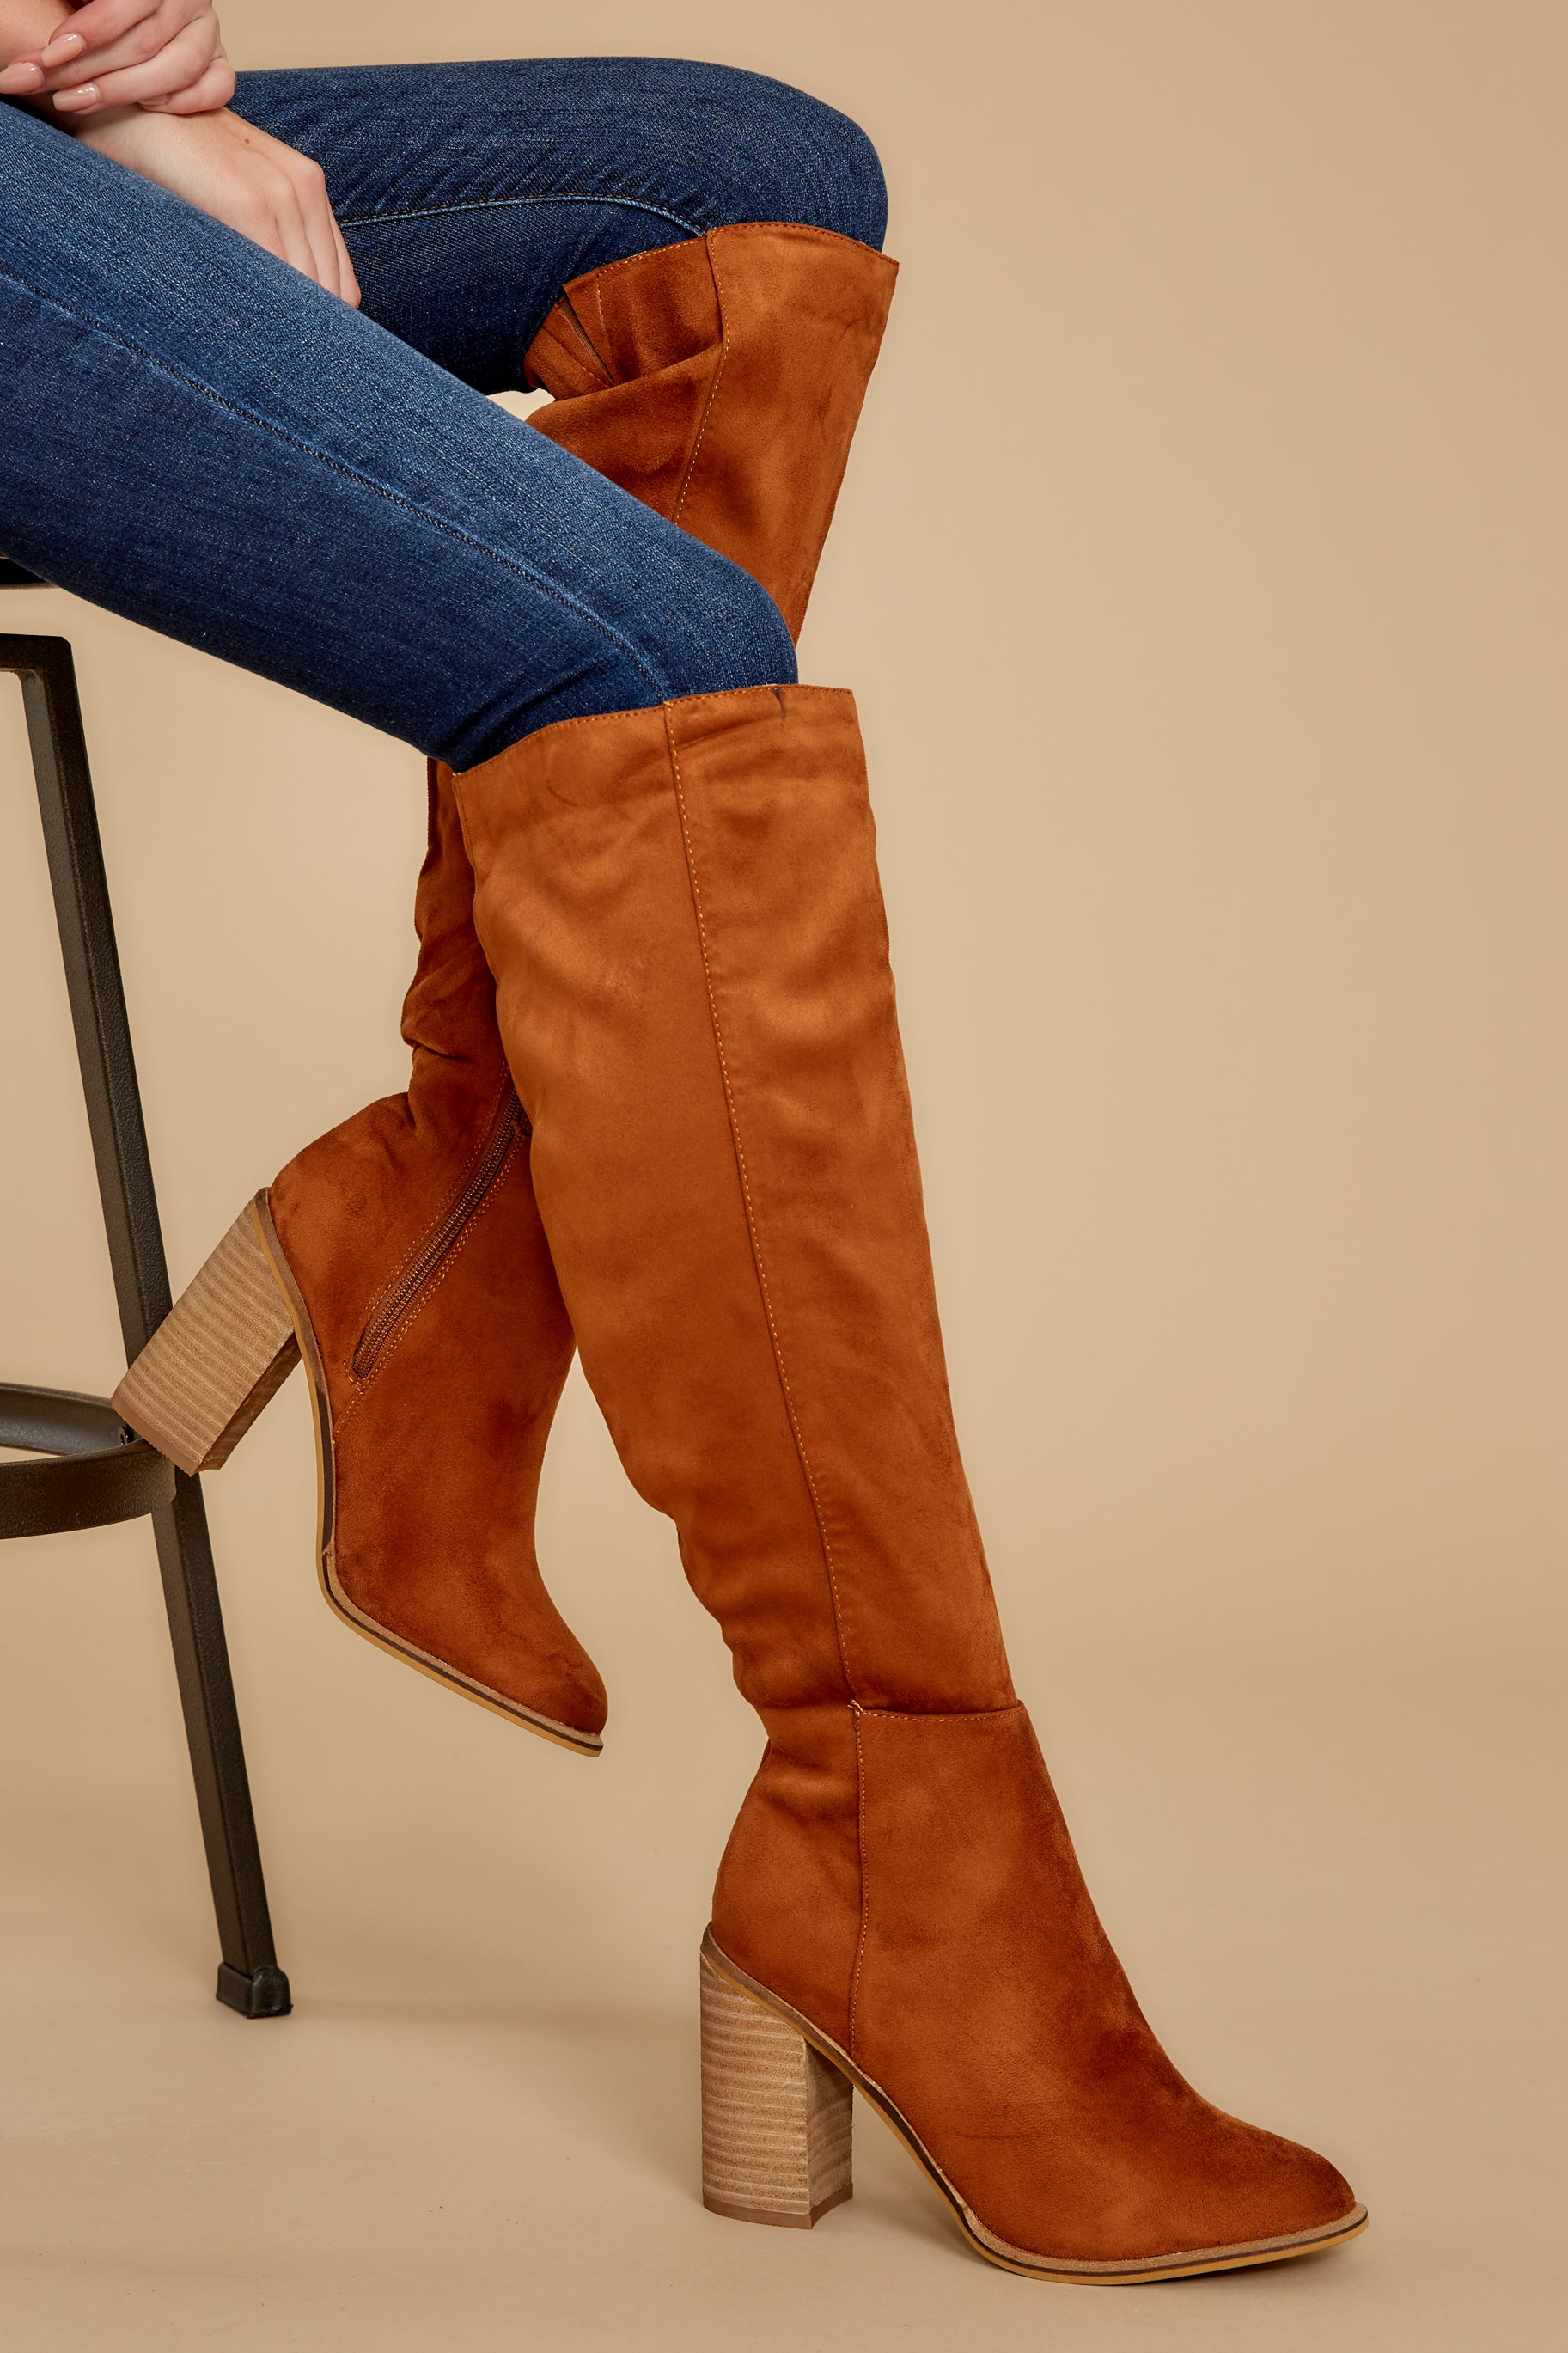 70s Shoes, Platforms, Boots, Heels | 1970s Shoes Standing Tall Chestnut Boots Brown $66.00 AT vintagedancer.com